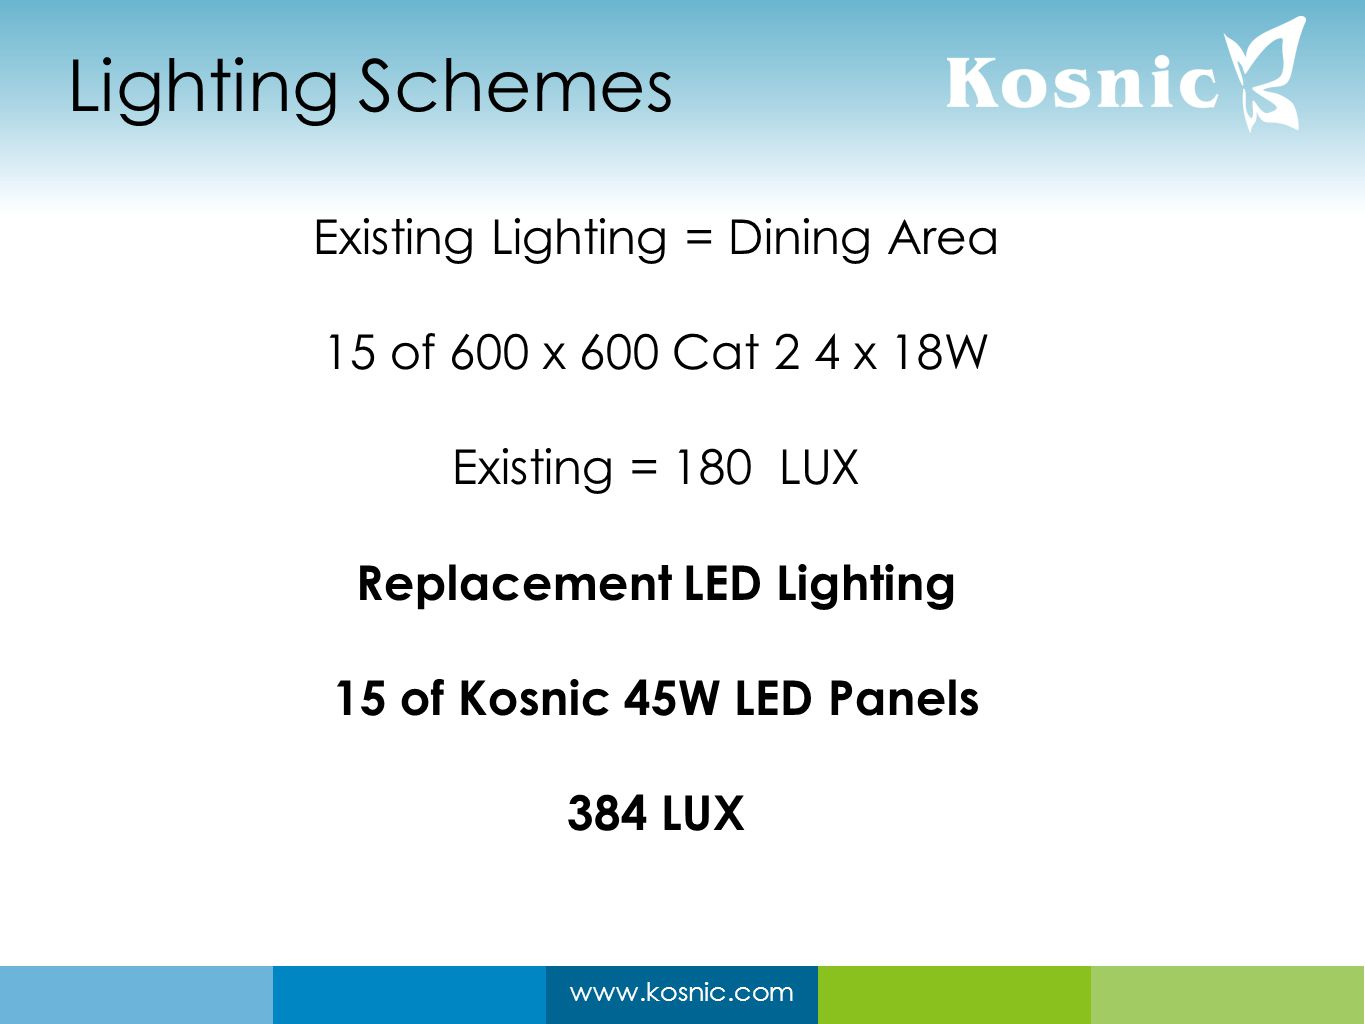 www.kosnic.com Lighting Schemes Existing Lighting = Dining Area 15 of 600 x 600 Cat 2 4 x 18W Existing = 180 LUX Replacement LED Lighting 15 of Kosnic 45W LED Panels 384 LUX